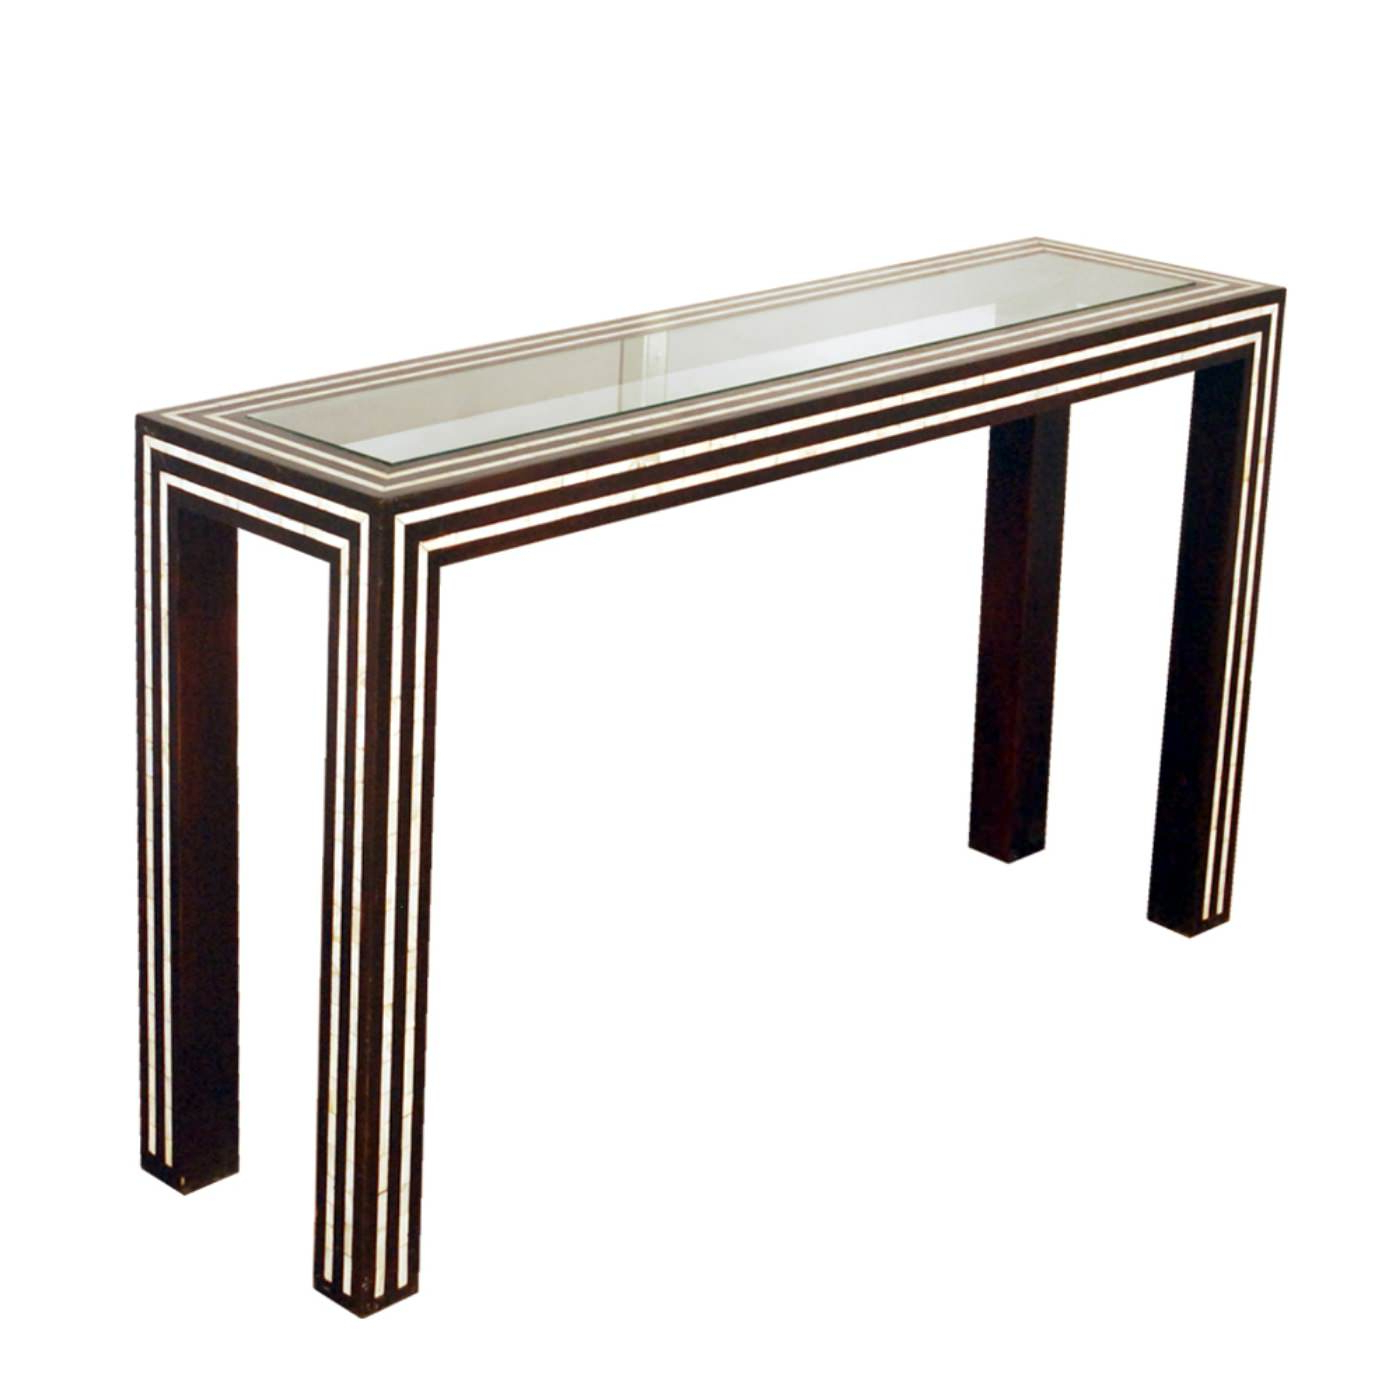 Black And White Pearl Inlay Console: Glass And Inlay Console Table For Black And White Inlay Console Tables (View 3 of 20)